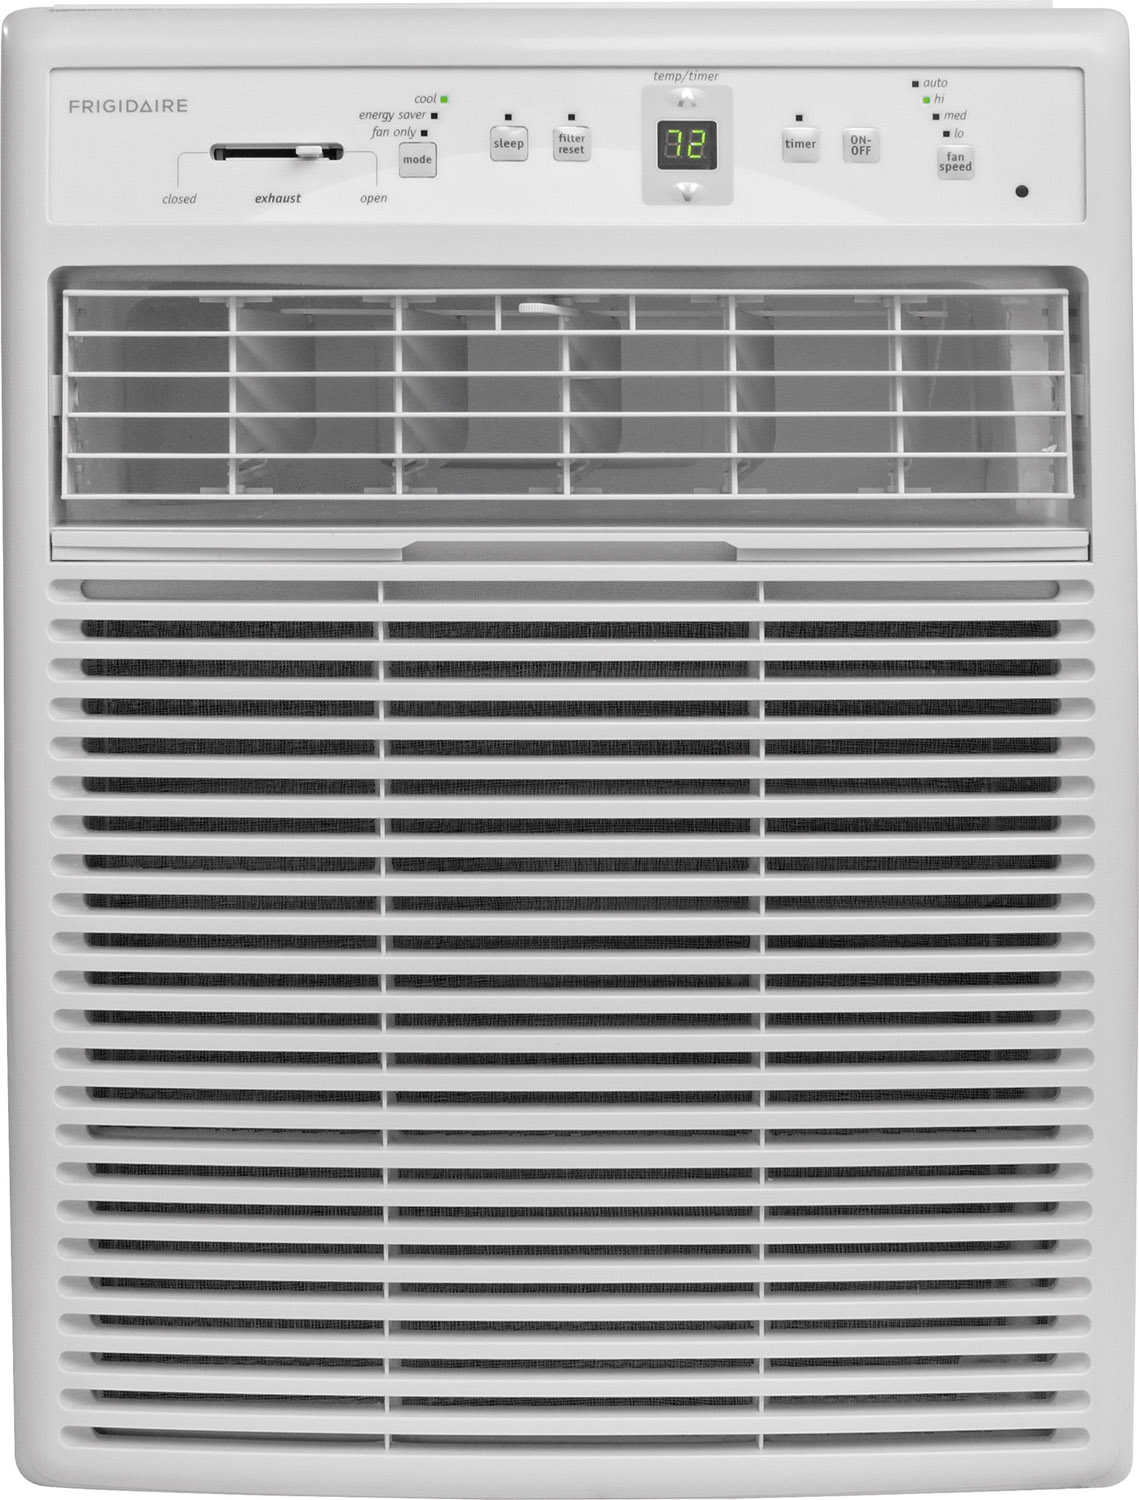 Frigidaire 8,000 BTU 10.8 EER 115V Casement Window Air Conditioner